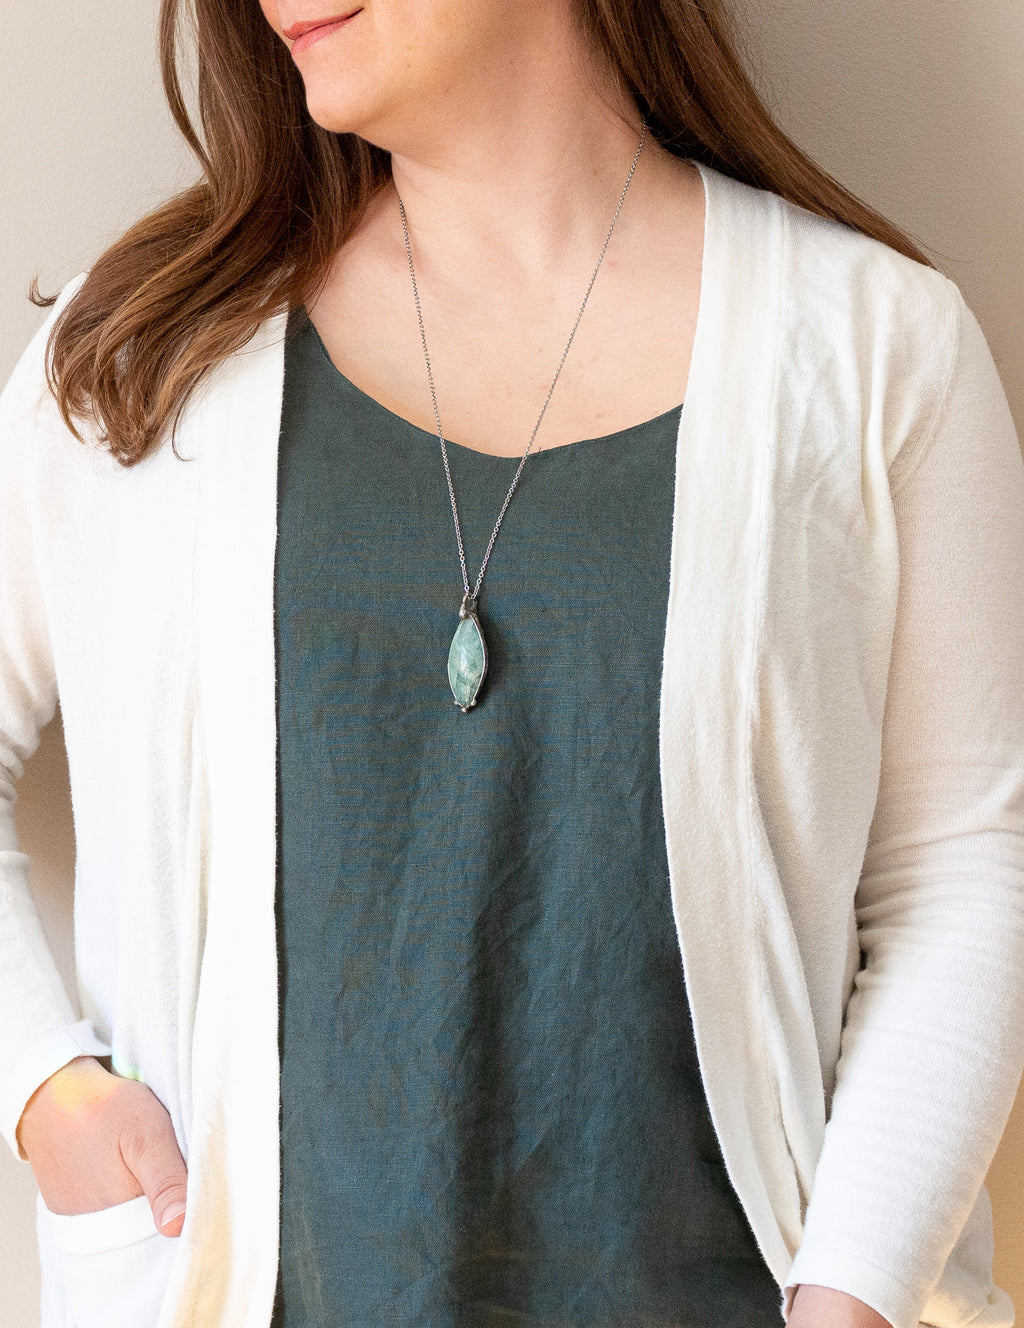 raw aquamarine pastel blue crystal gemstone talisman necklace on woman in blue top with white cardigan